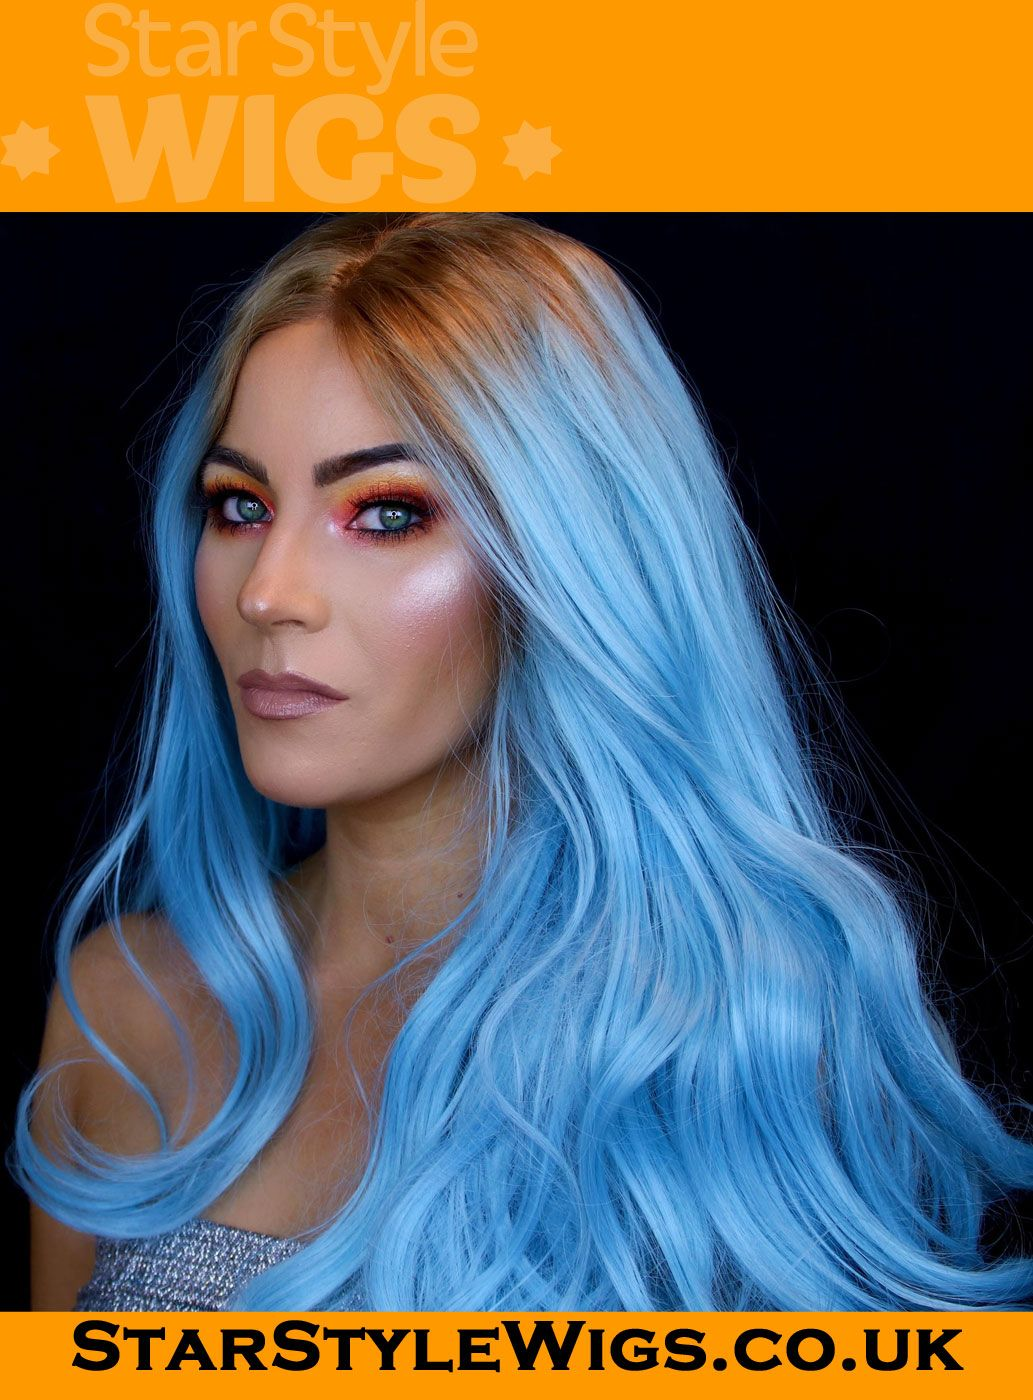 Blue Lace Front Wig by Star Style Wigs. Dazzling pastel blue lace frontal  as worn by  reallymili to complement her rainbow eye makeup look. 4d7a9838141f